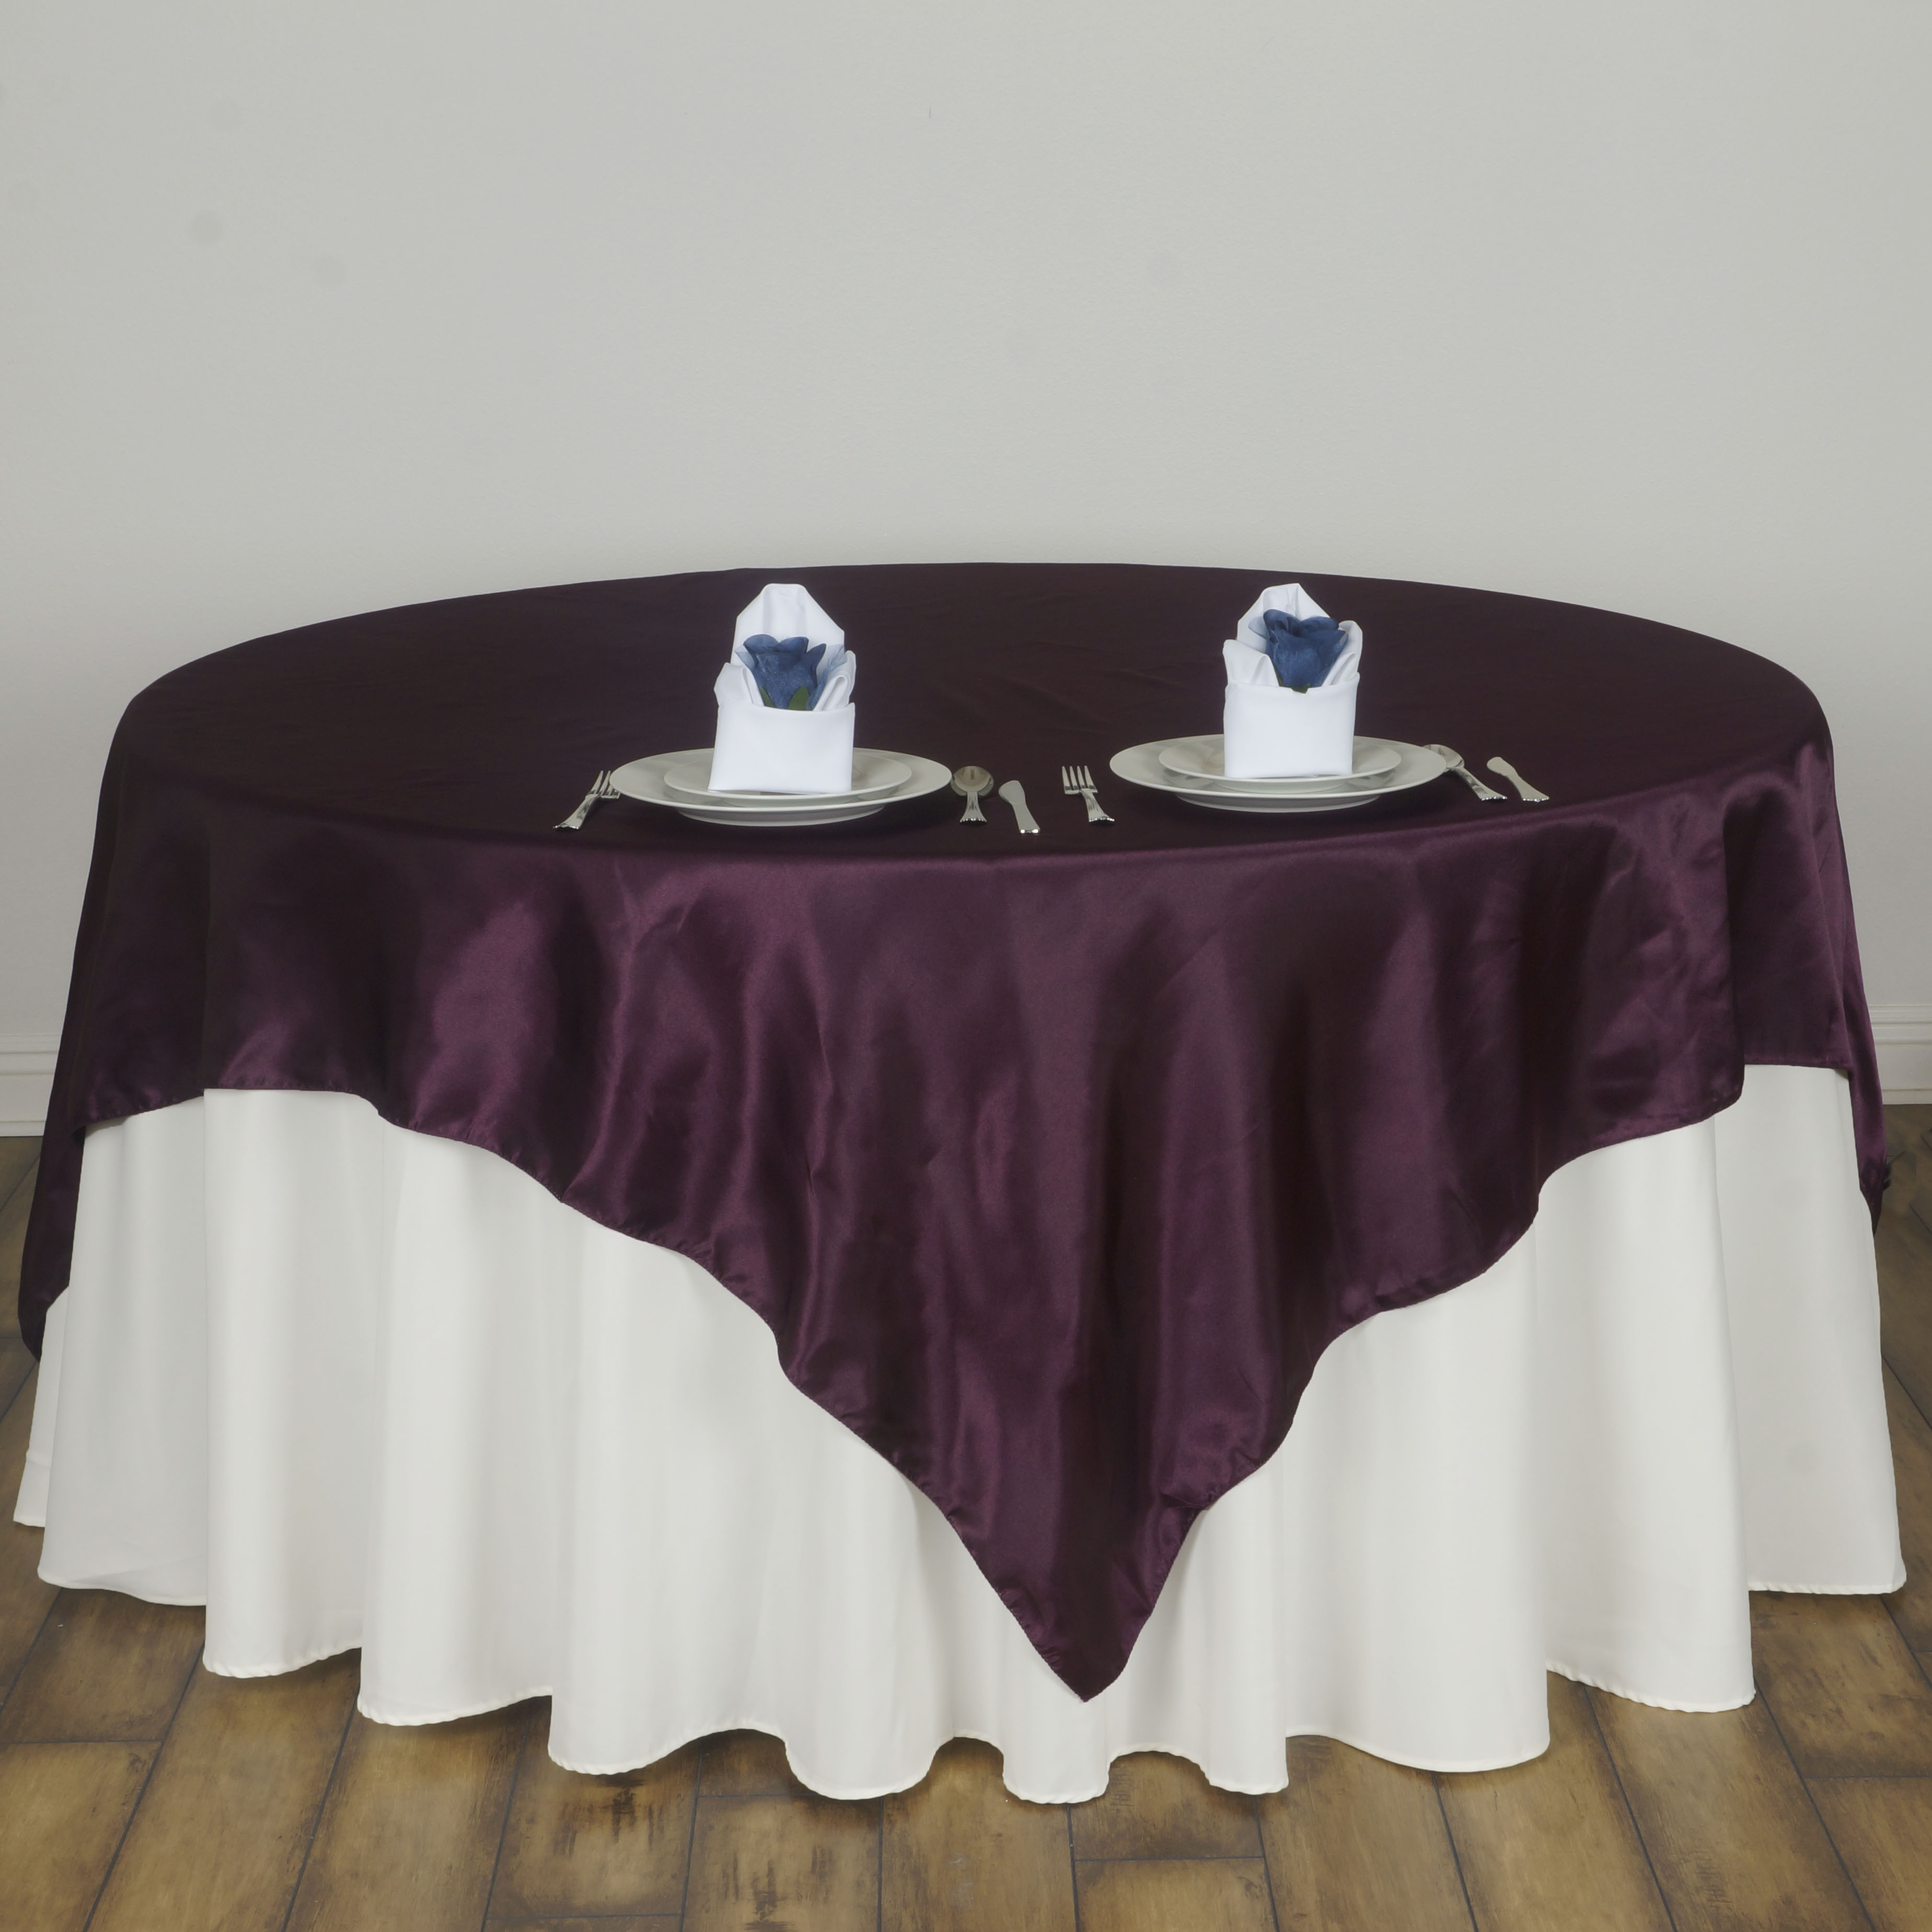 15 pack 60 square satin table overlays toppers wedding wholesale 15 pack 60 034 square satin table overlays junglespirit Image collections